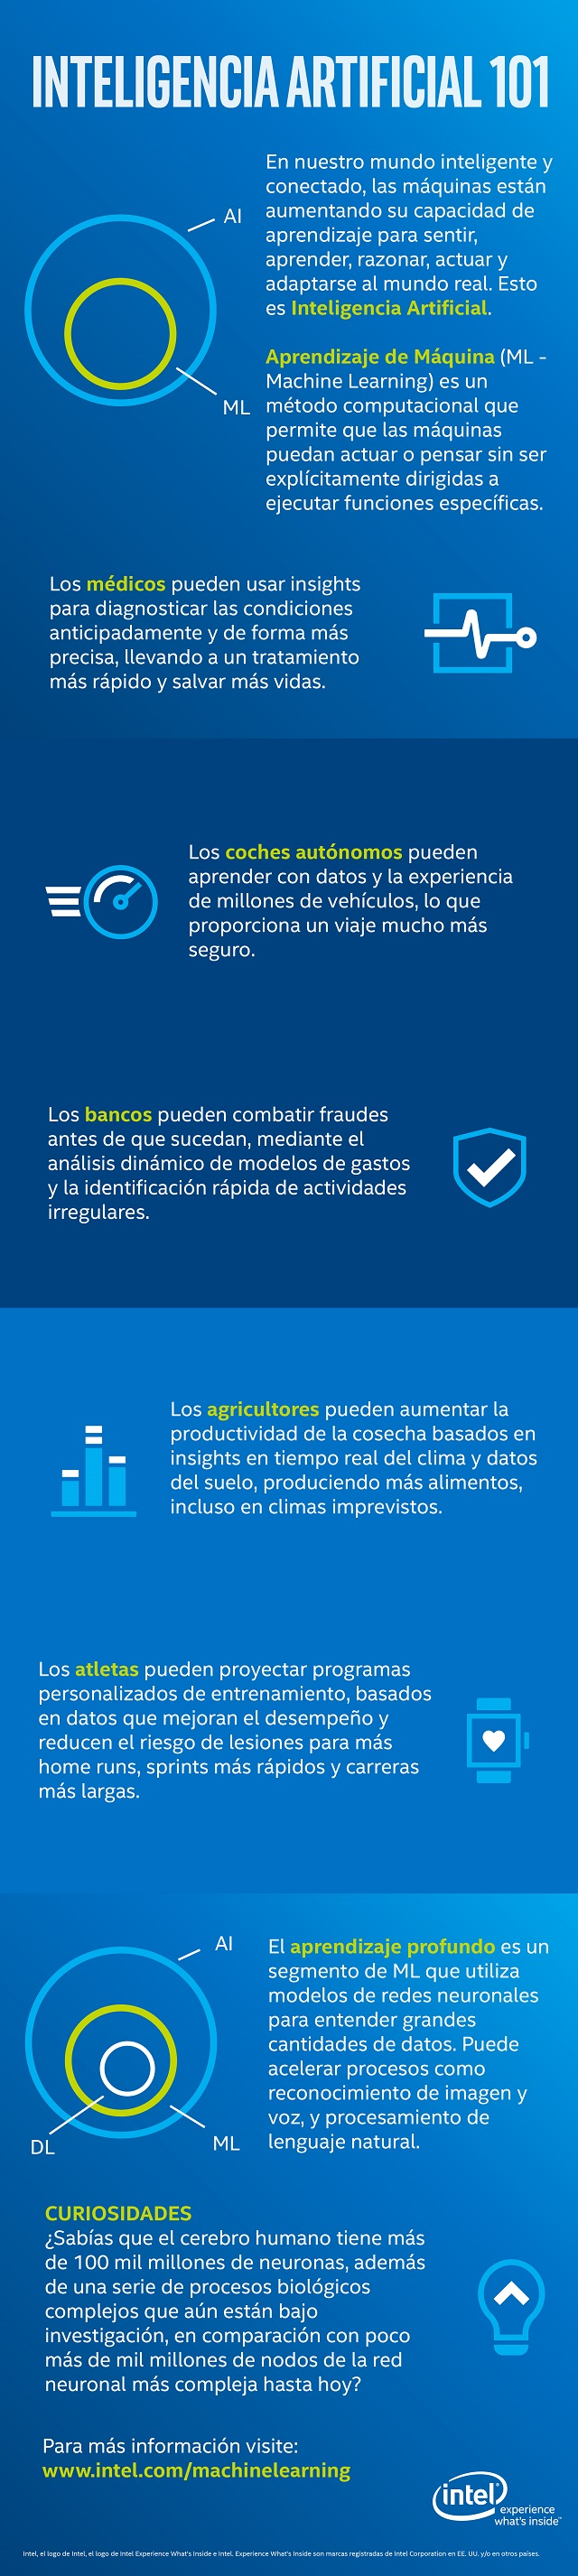 Infografia Inteligencia Artificial